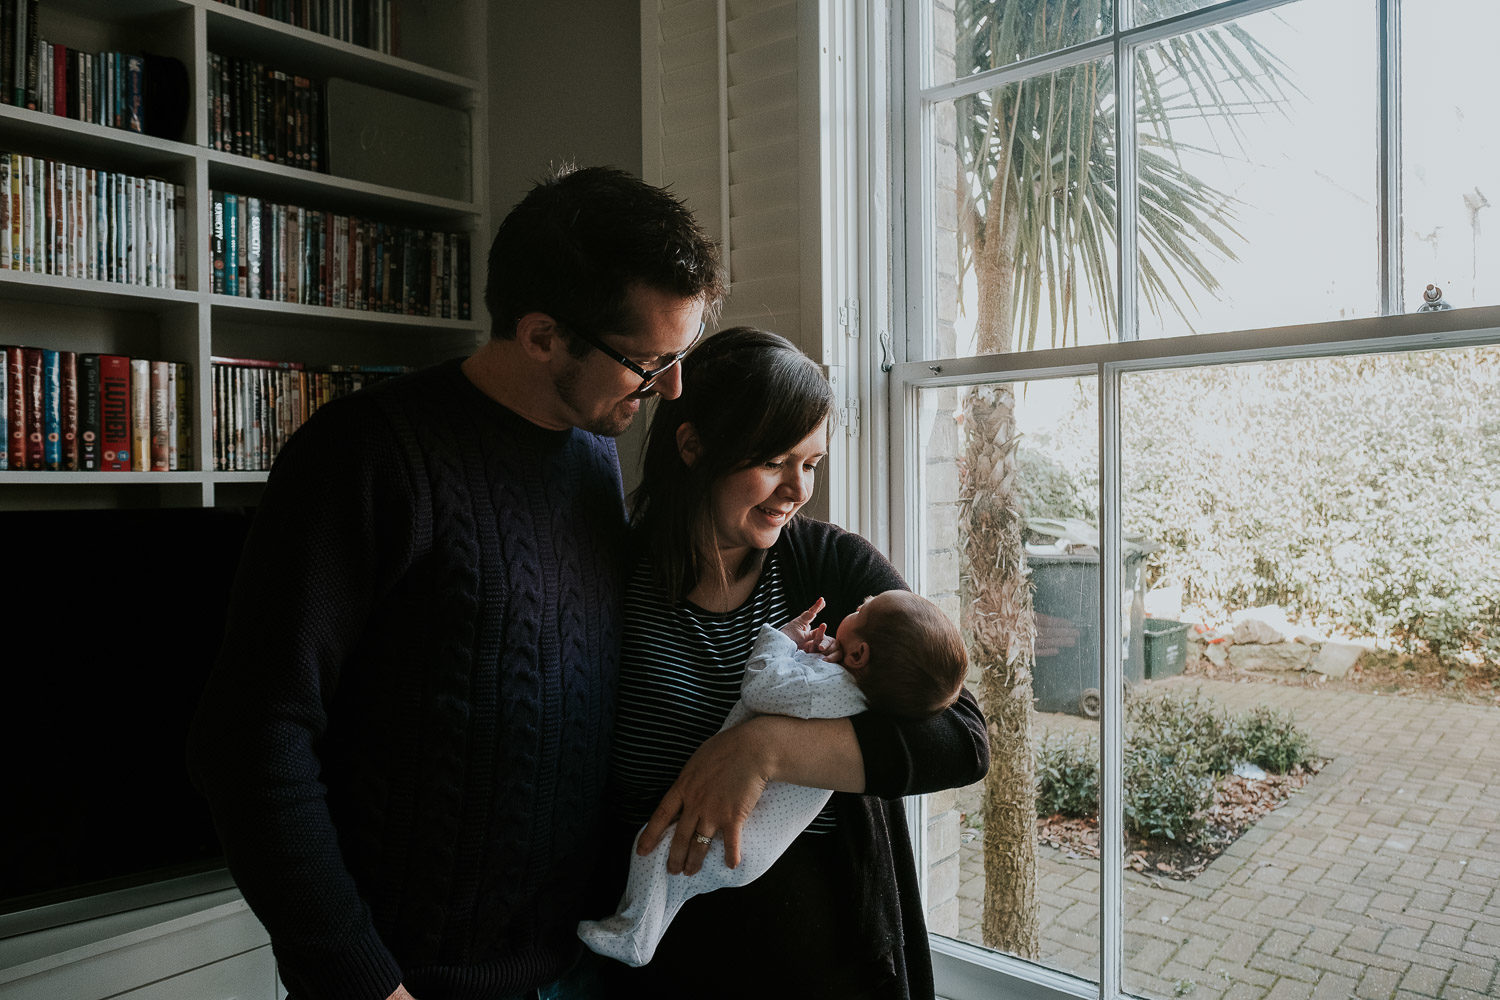 tunbridge wells baby photographer parents with newborn standing by window hugging